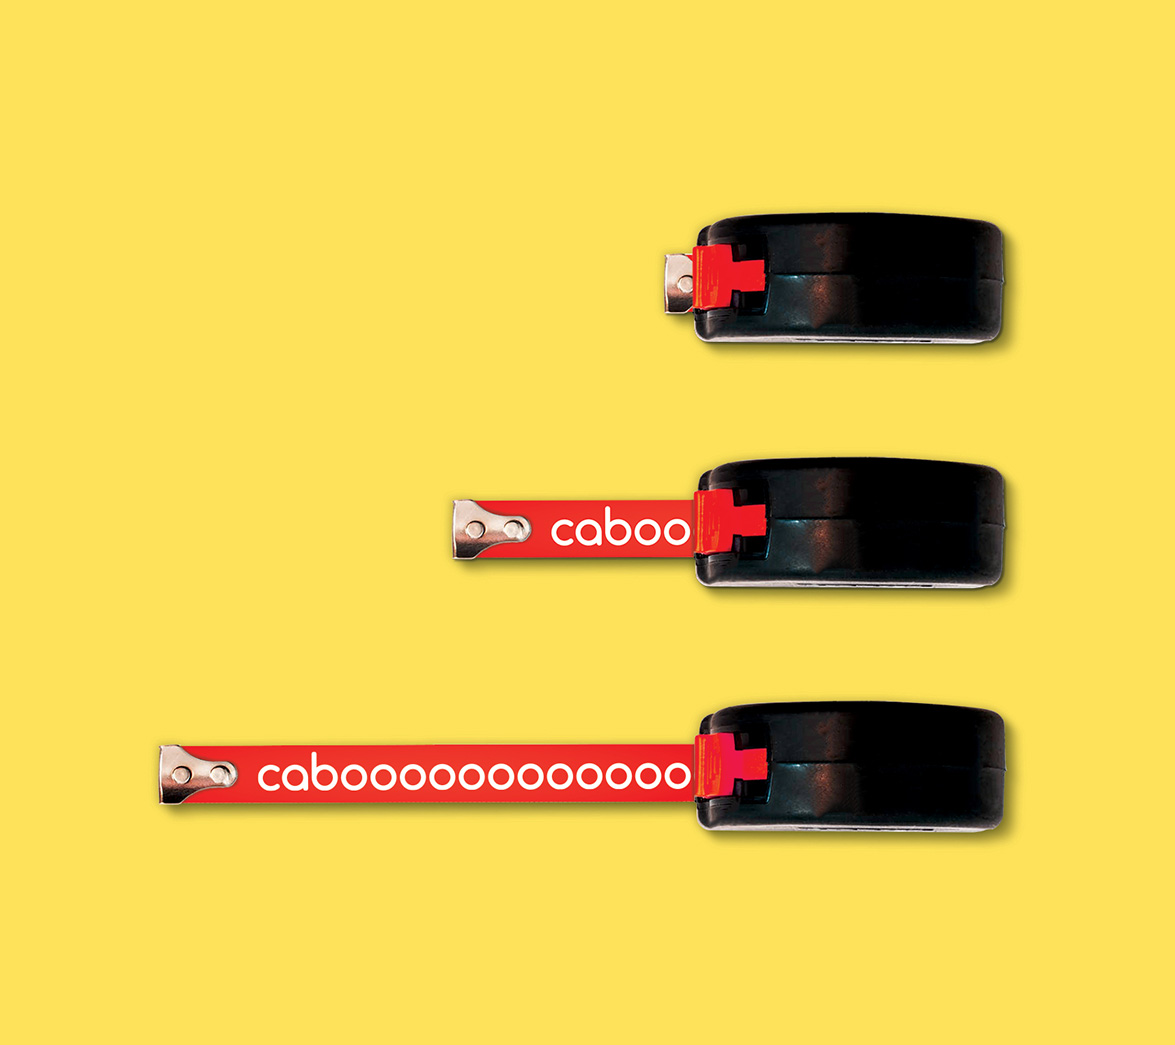 Measuring tape design for new startup brand Caboodle, designed by White Bear Studio